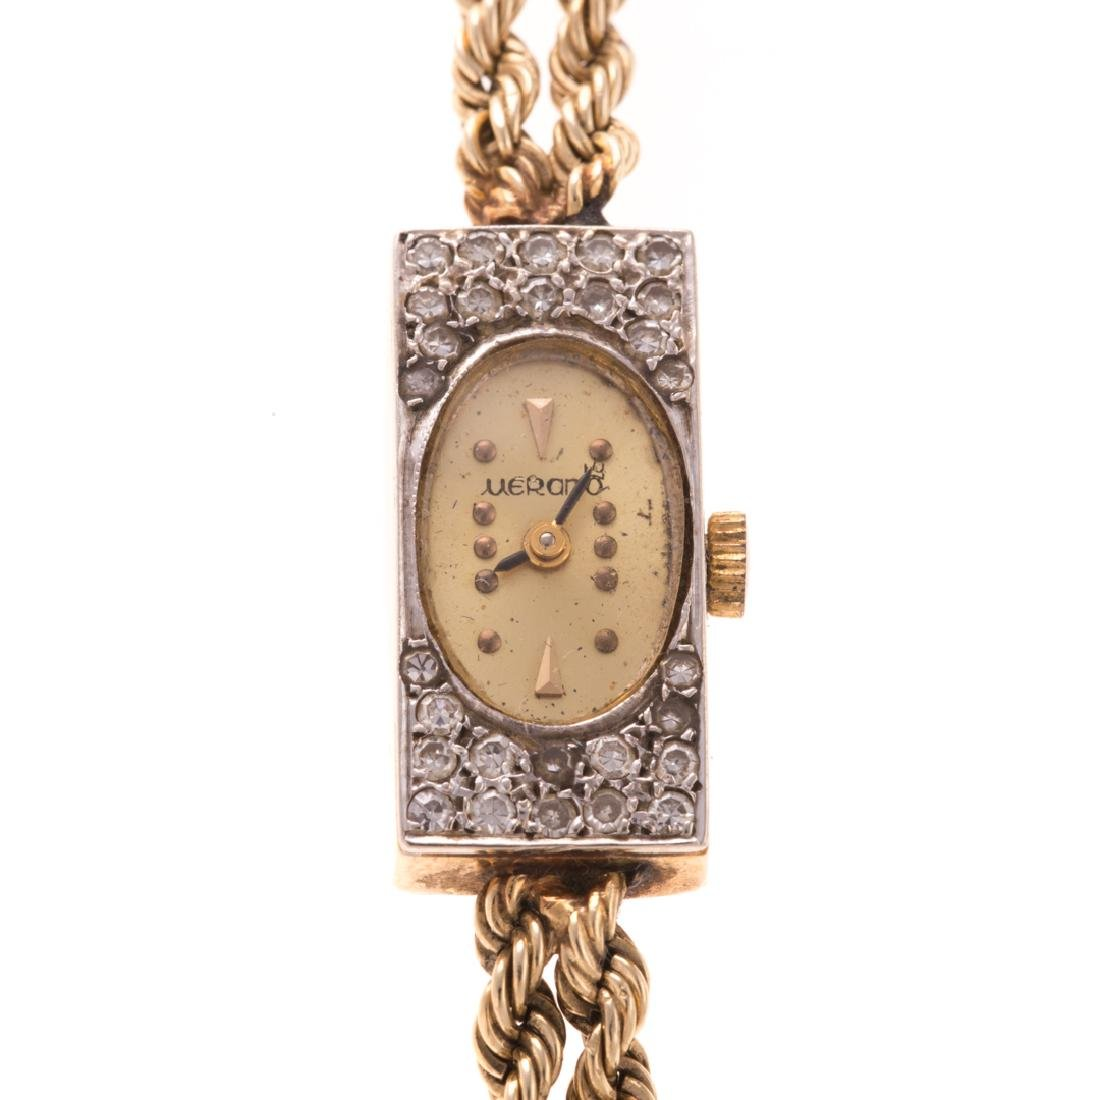 A Lady's Murano Watch with Diamonds in 14K Gold